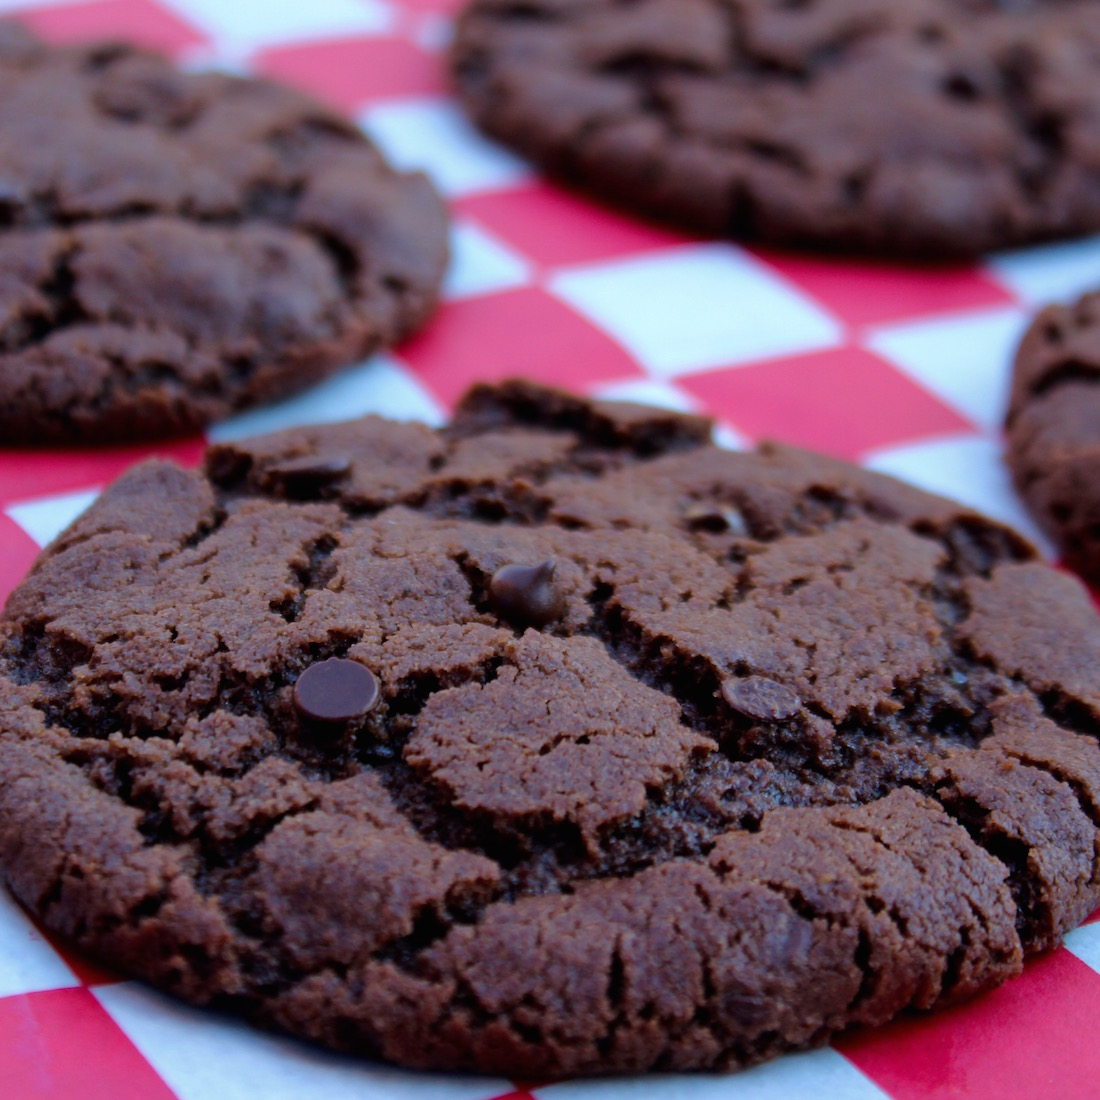 What Chocolate To Use In Chocolate Chip Cookies